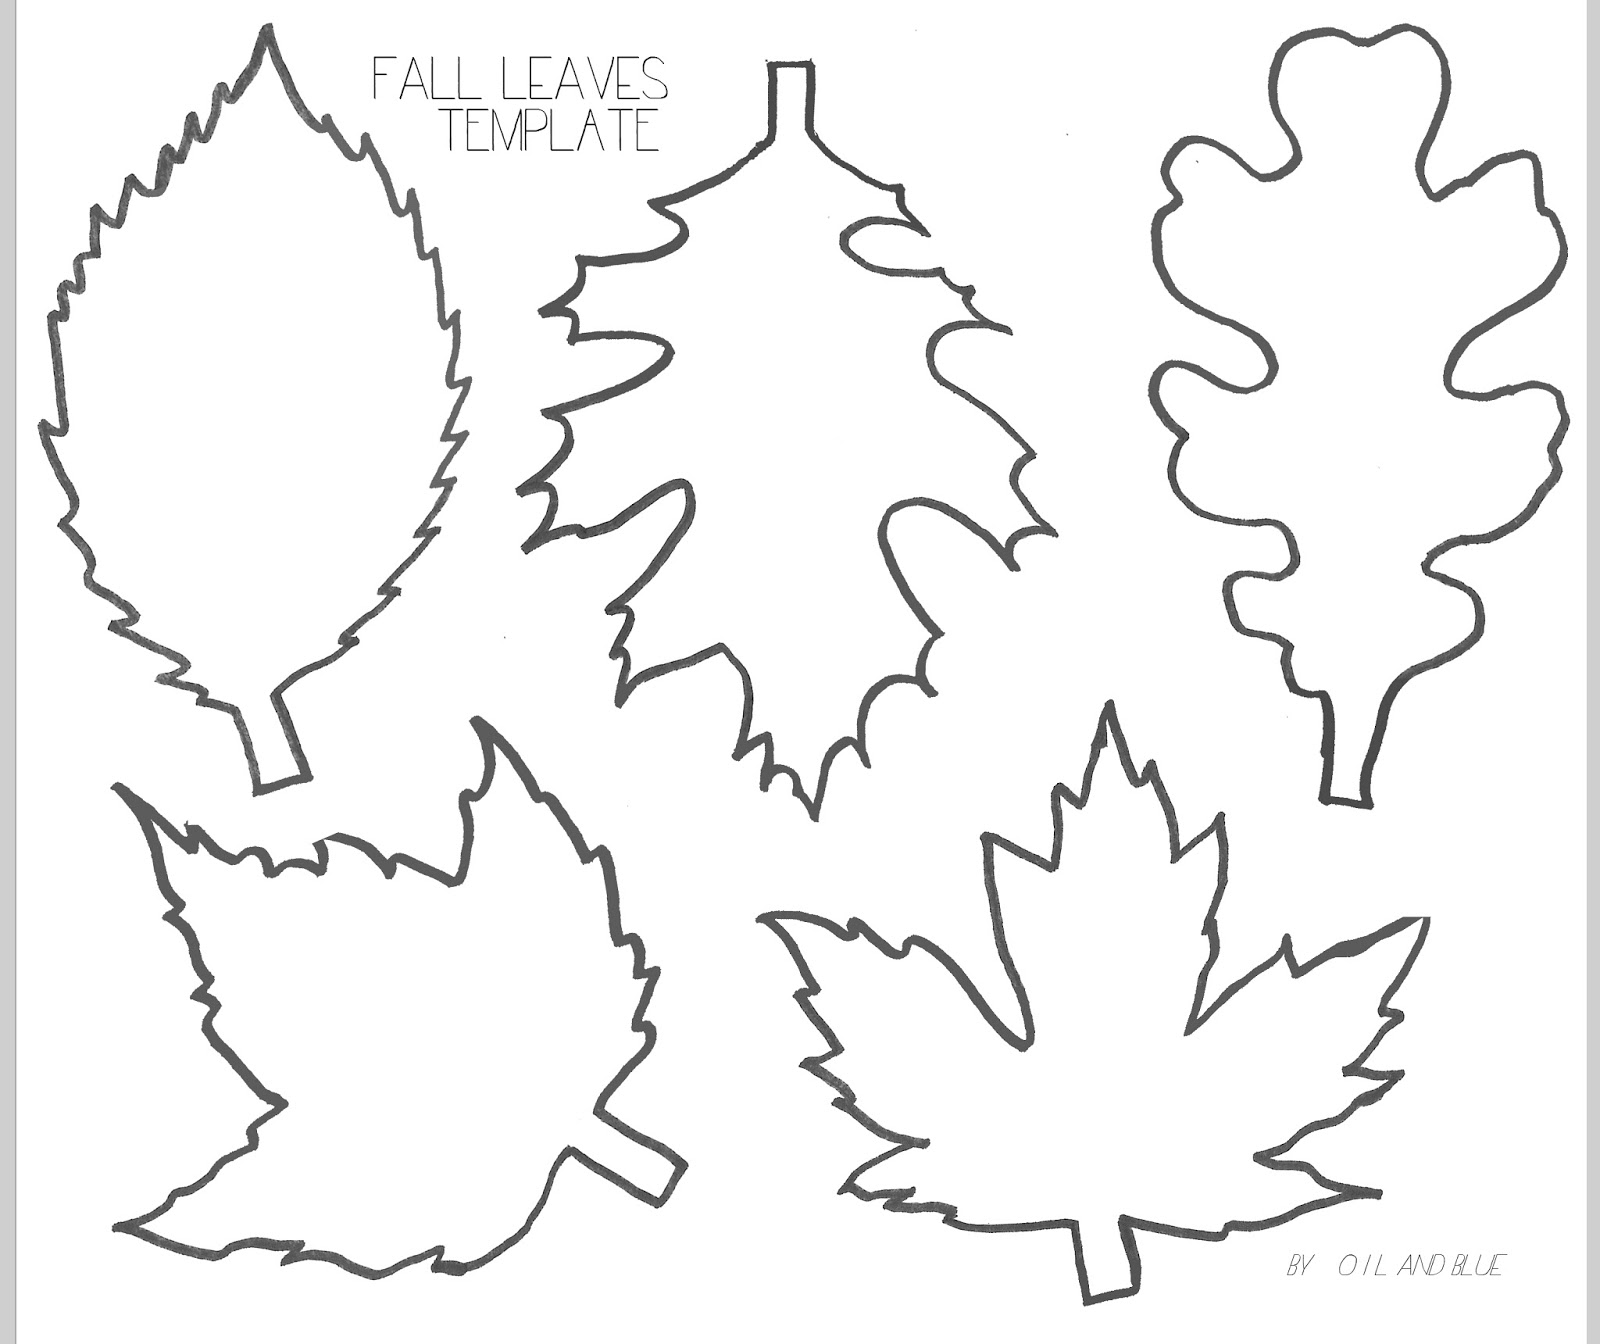 free leaf templates printable - Romeo.landinez.co